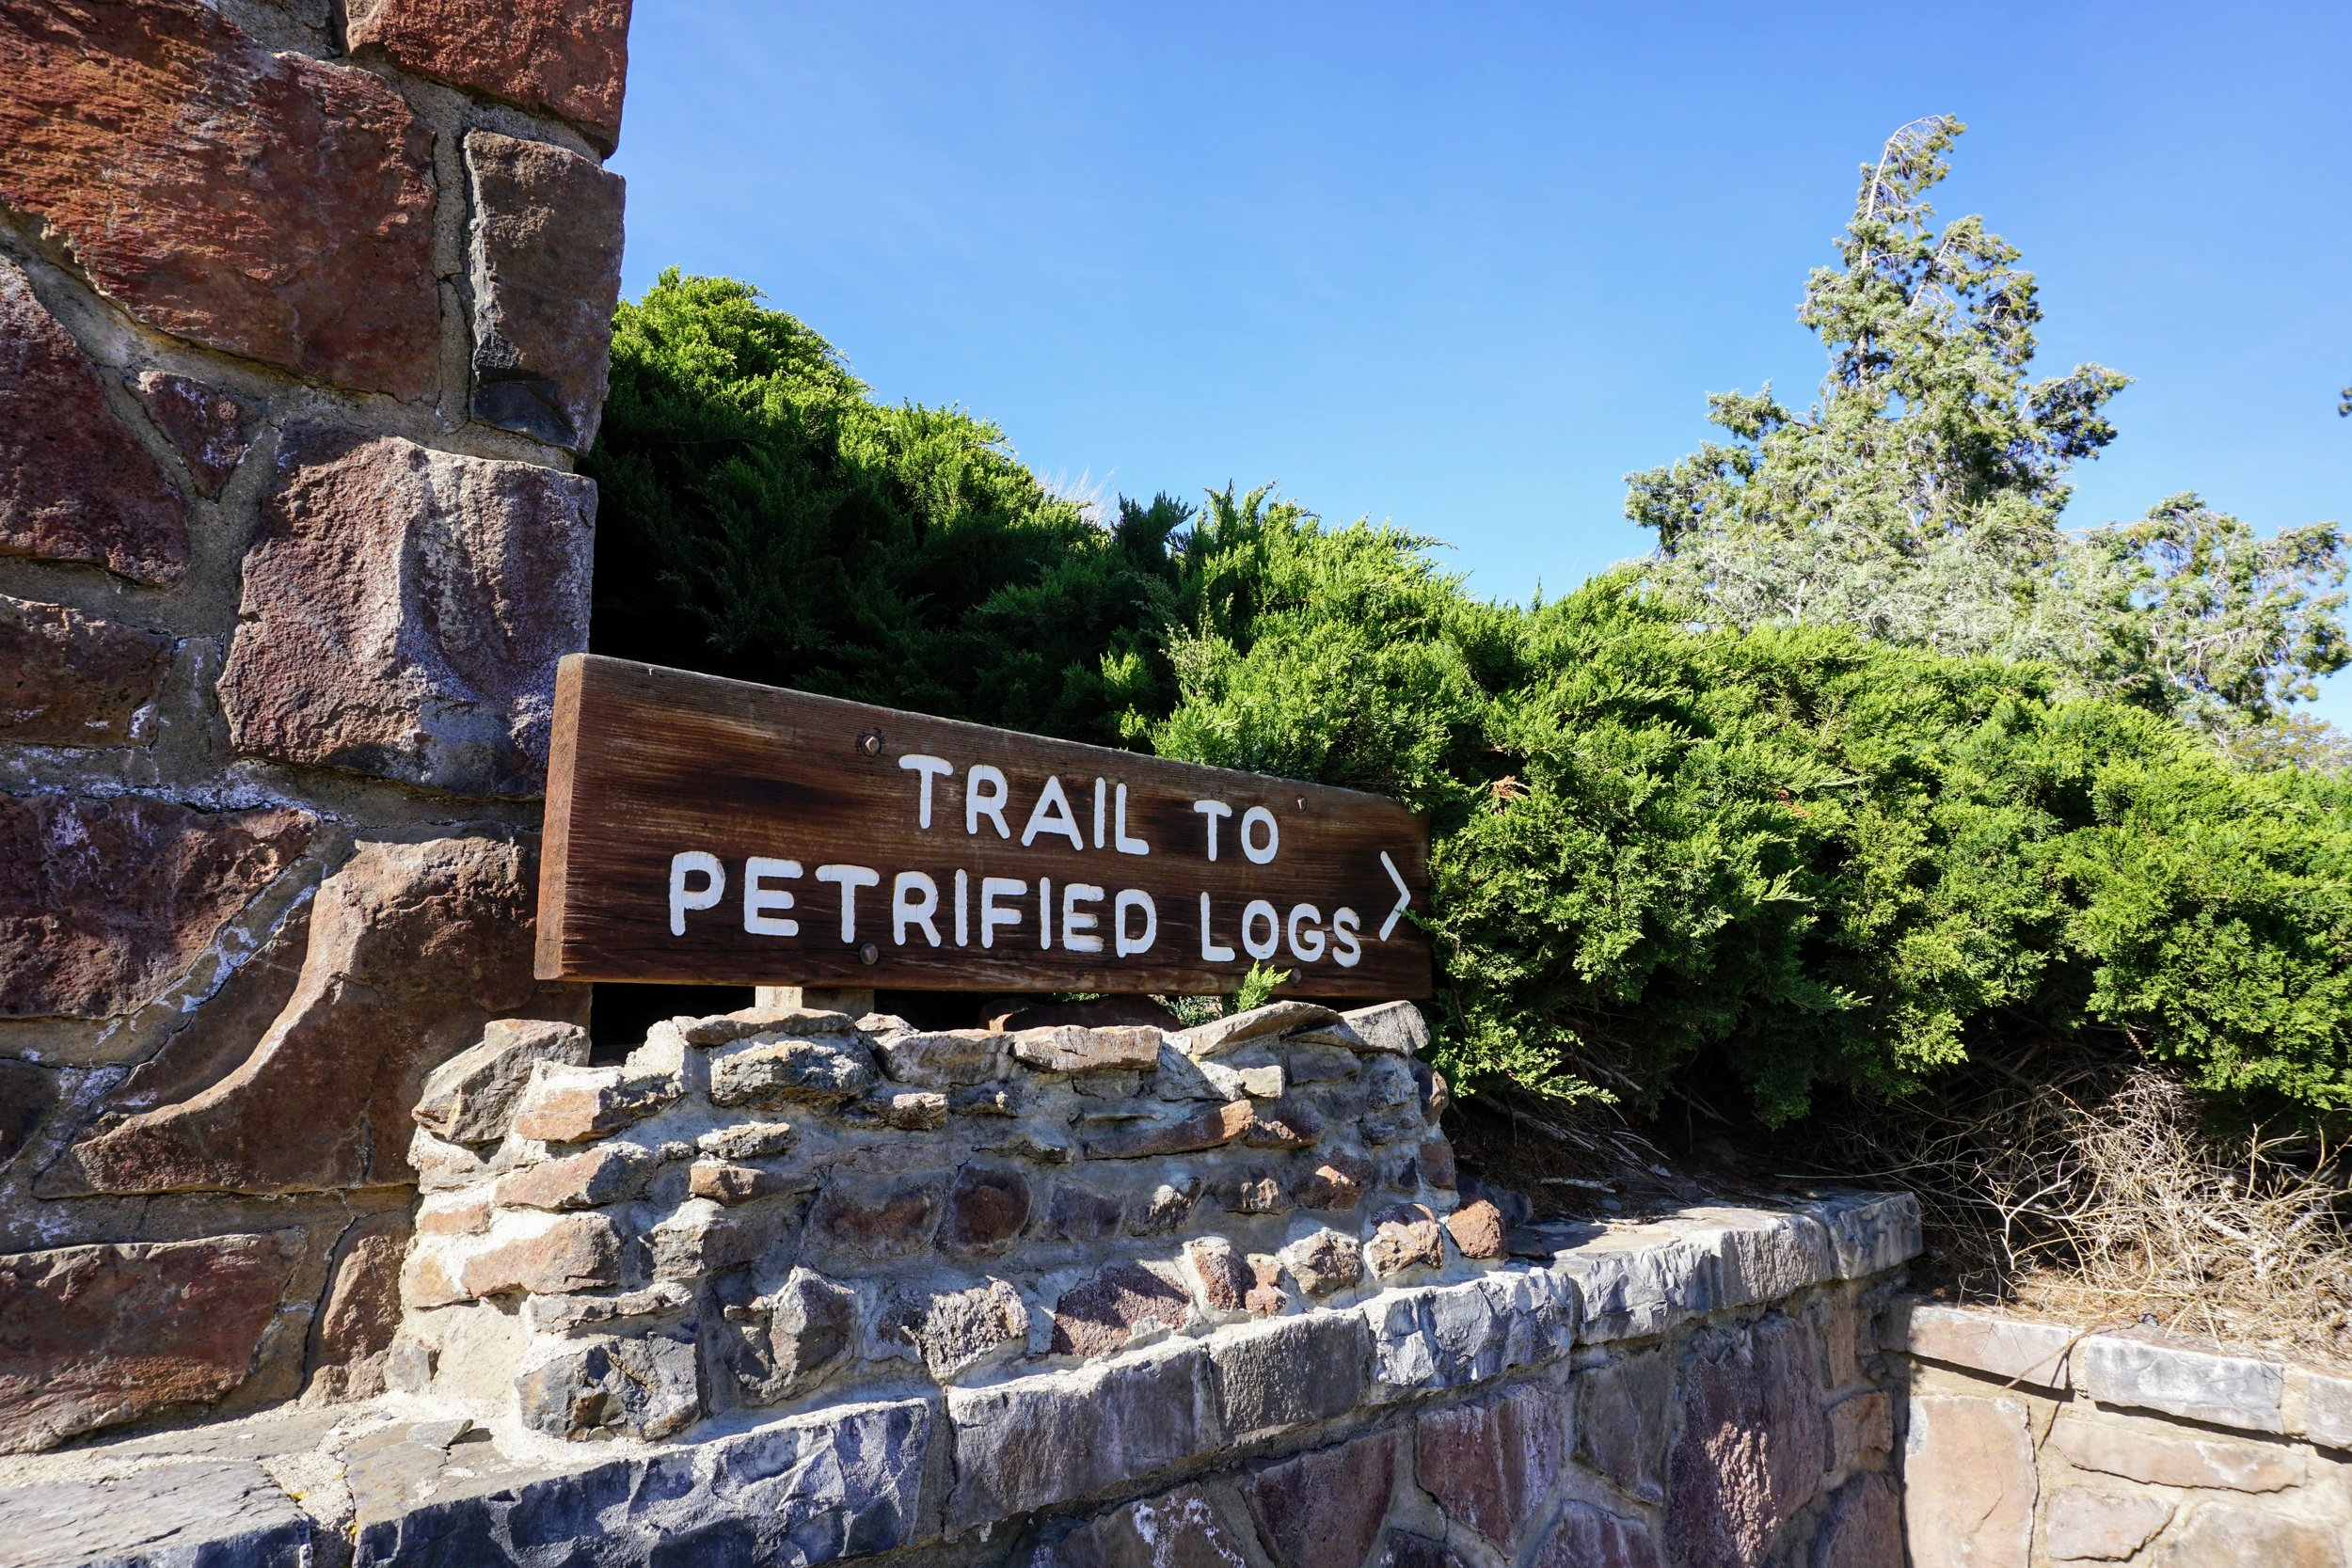 Trees of Stone Trail at Ginkgo Petrified Forest State Park